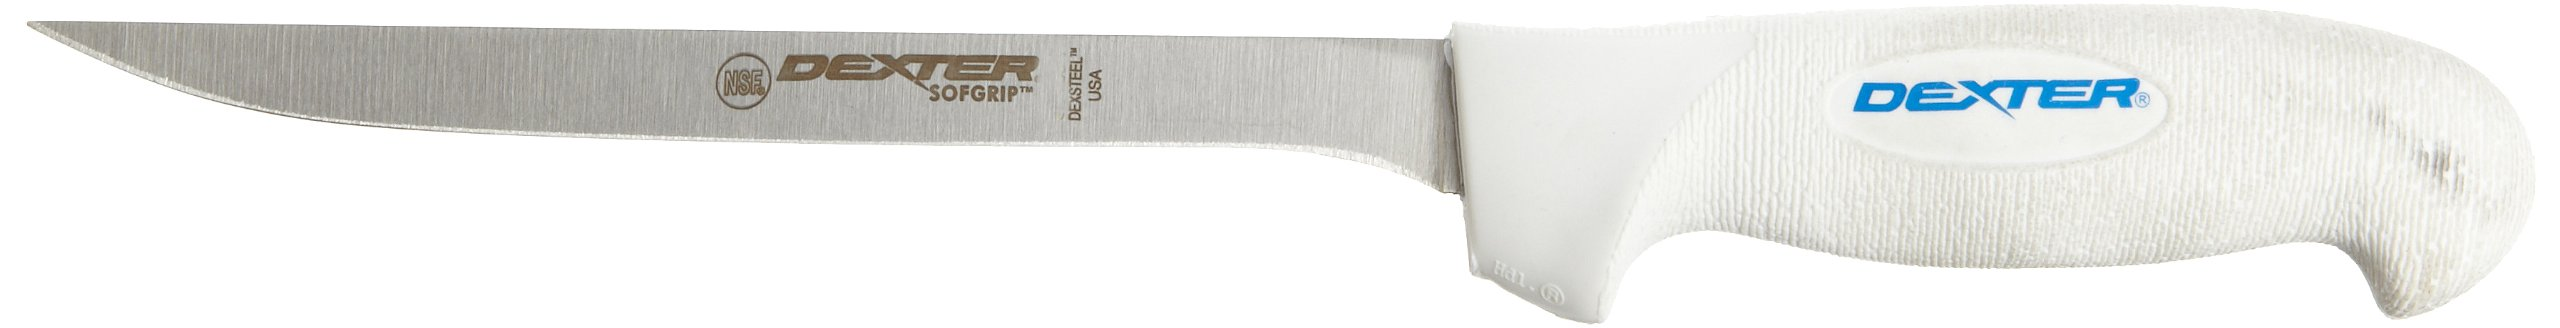 Sofgrip SG133-7-PCP 7'' Narrow Fillet Knife with Soft Rubber Grip Handle